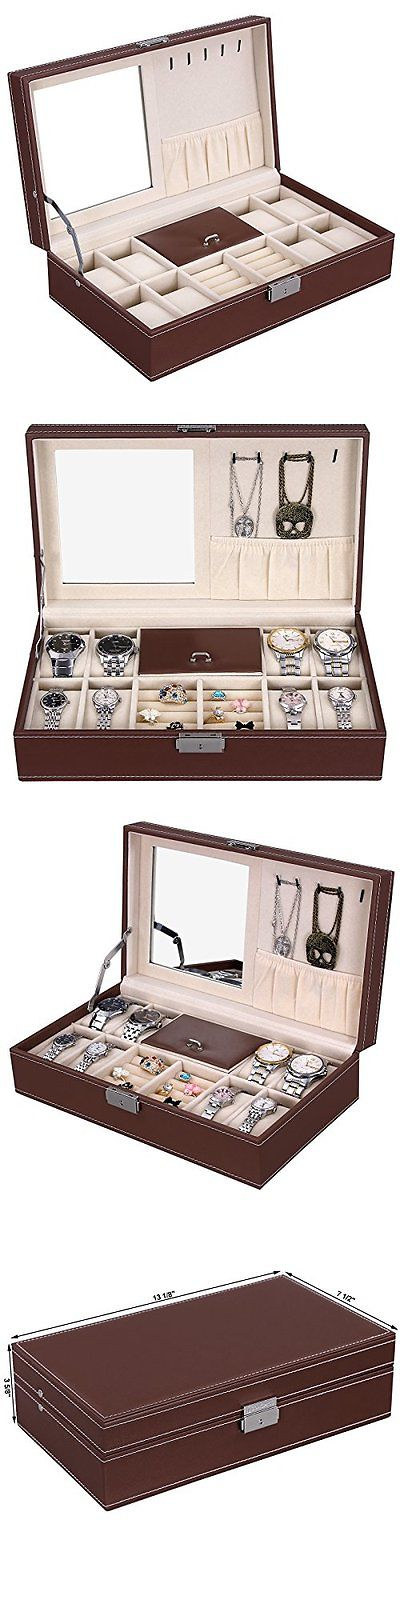 Jewelry Boxes 3820 New Brown Leather Mens Unisex Jewelry Box 8